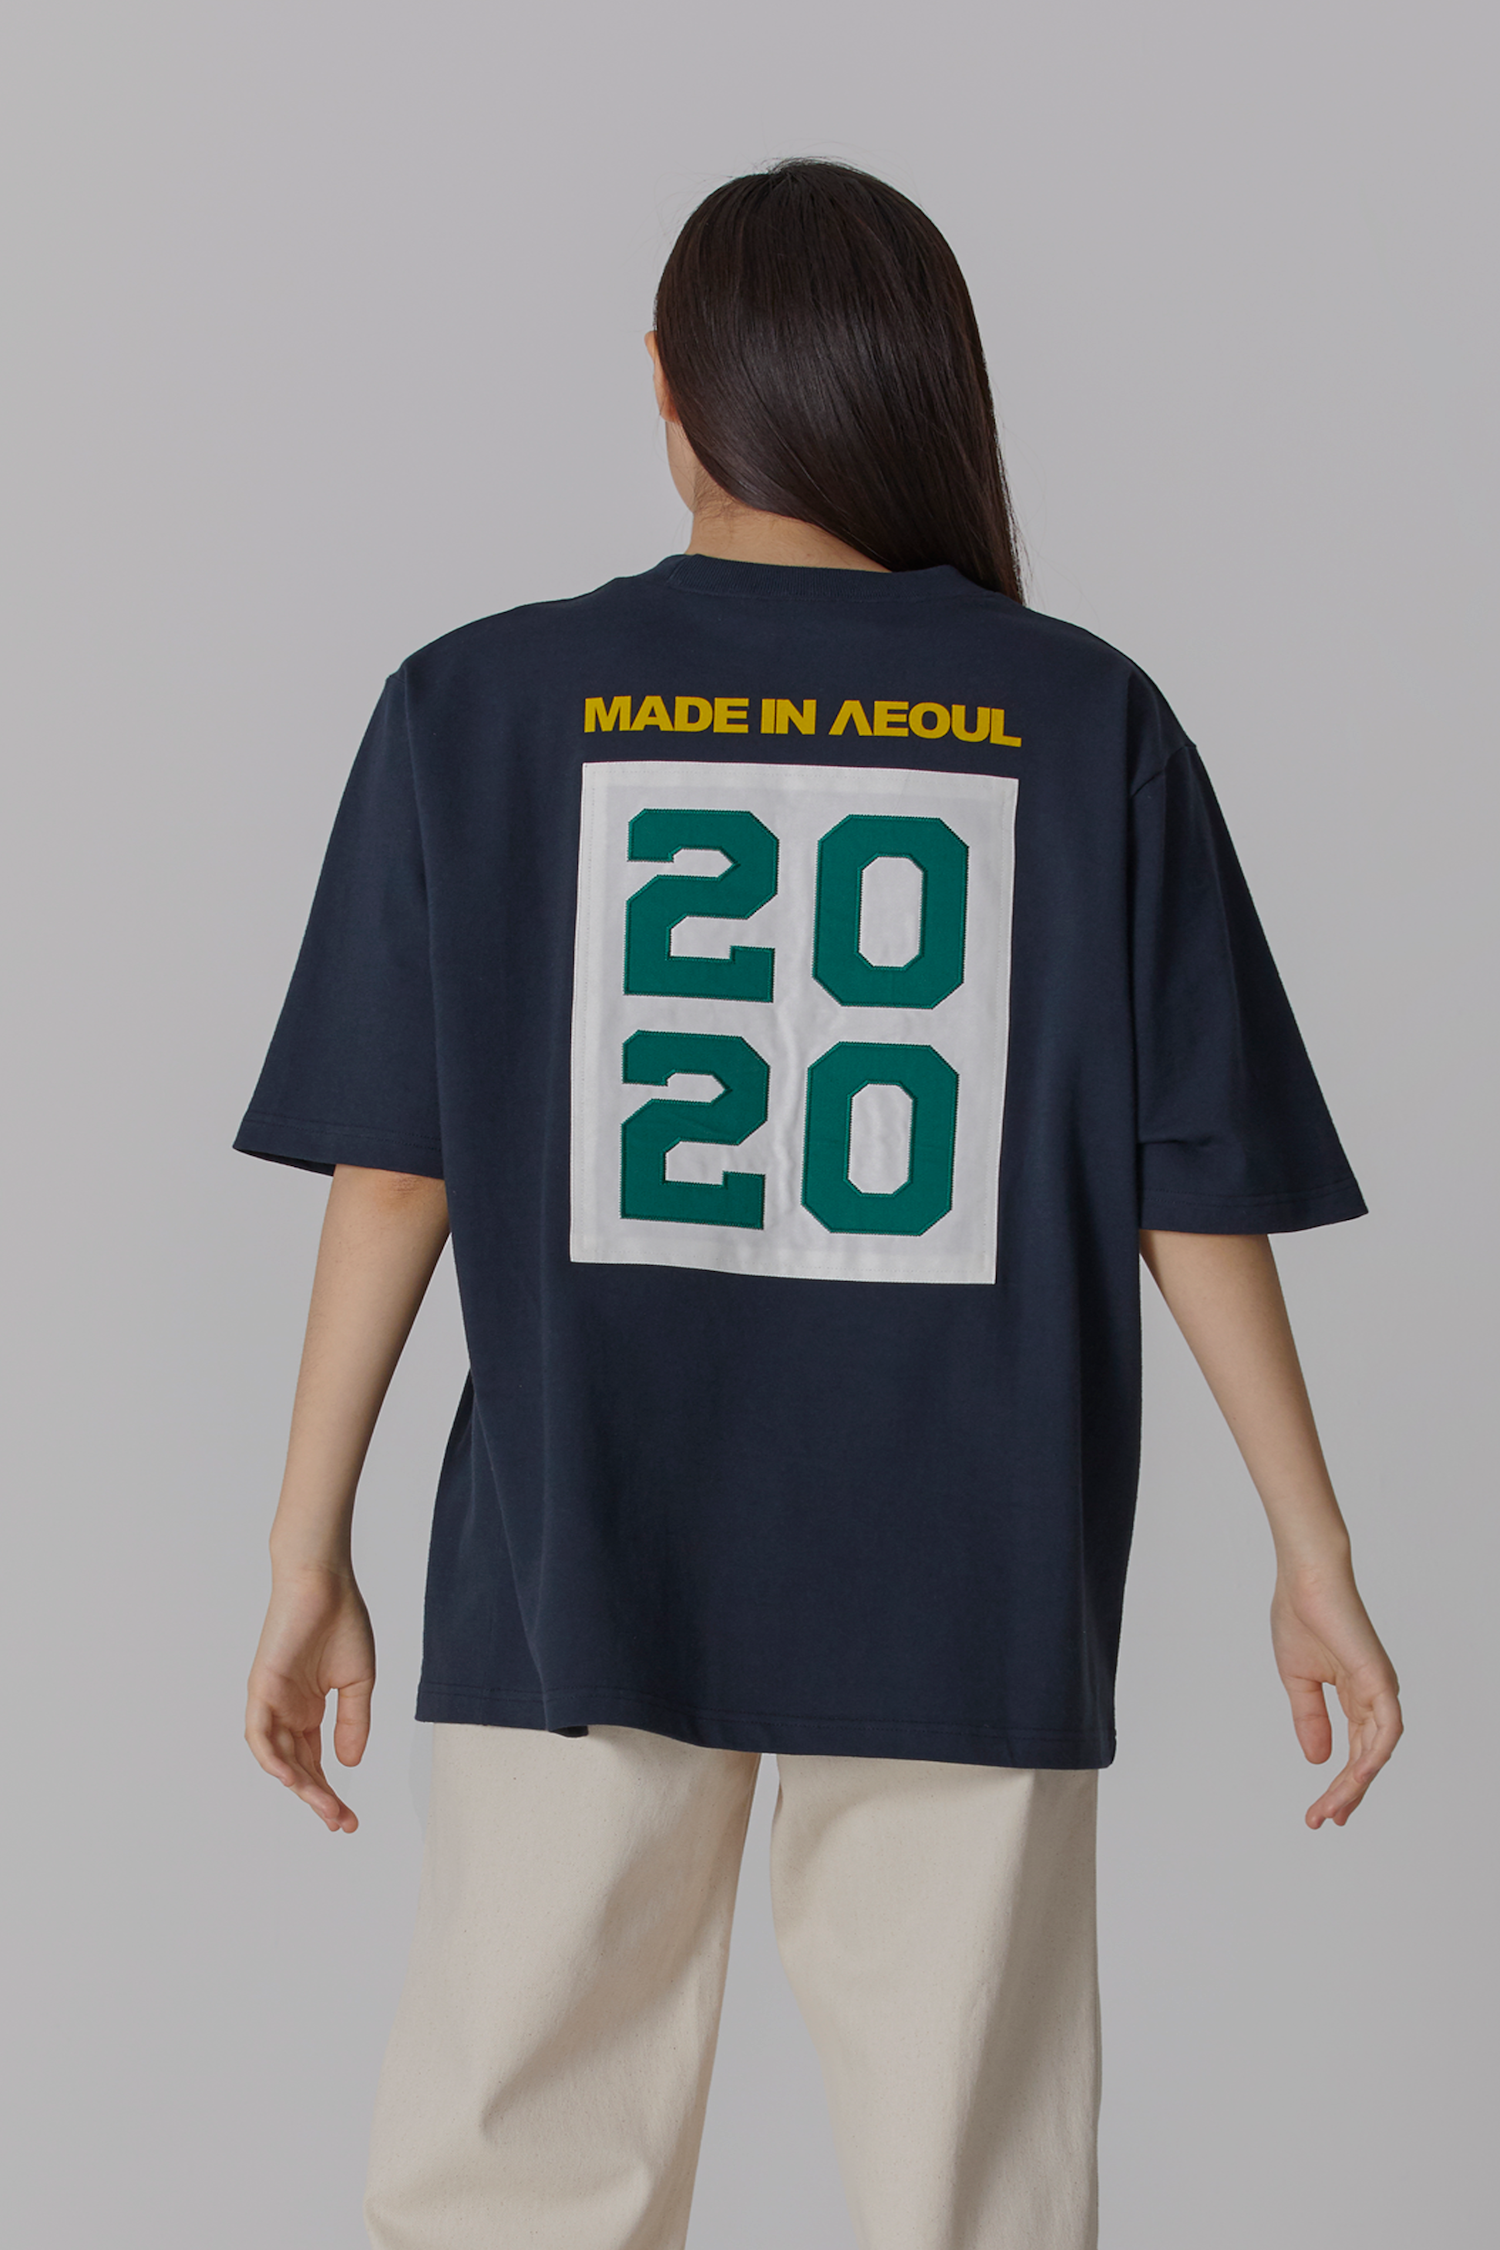 MADE IN SEOUL 2020 T SHIRT NAVY